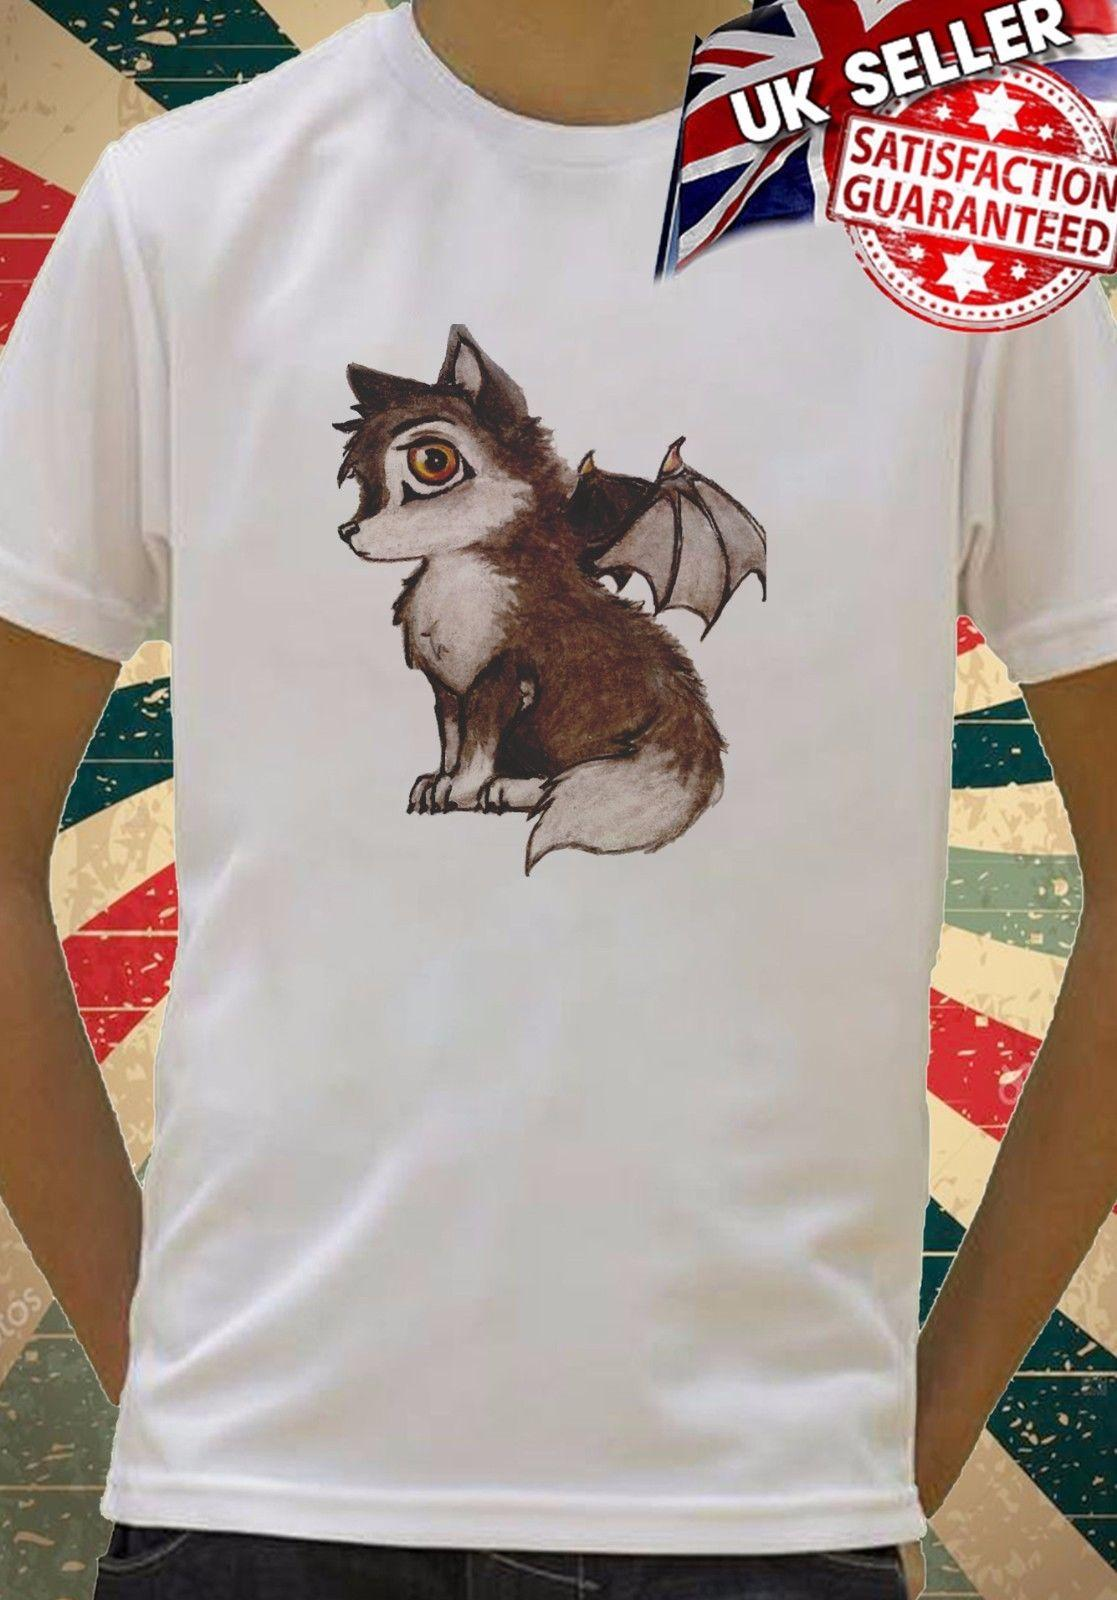 fe539b3a9 Cute Baby Wolves With Wings Tumblr Cool Kids Boy Girls Unisex Top T Shirt  750Funny Casual Tee One Day Only T Shirts Limited T Shirts 24 Hours From  Fatcuckoo ...